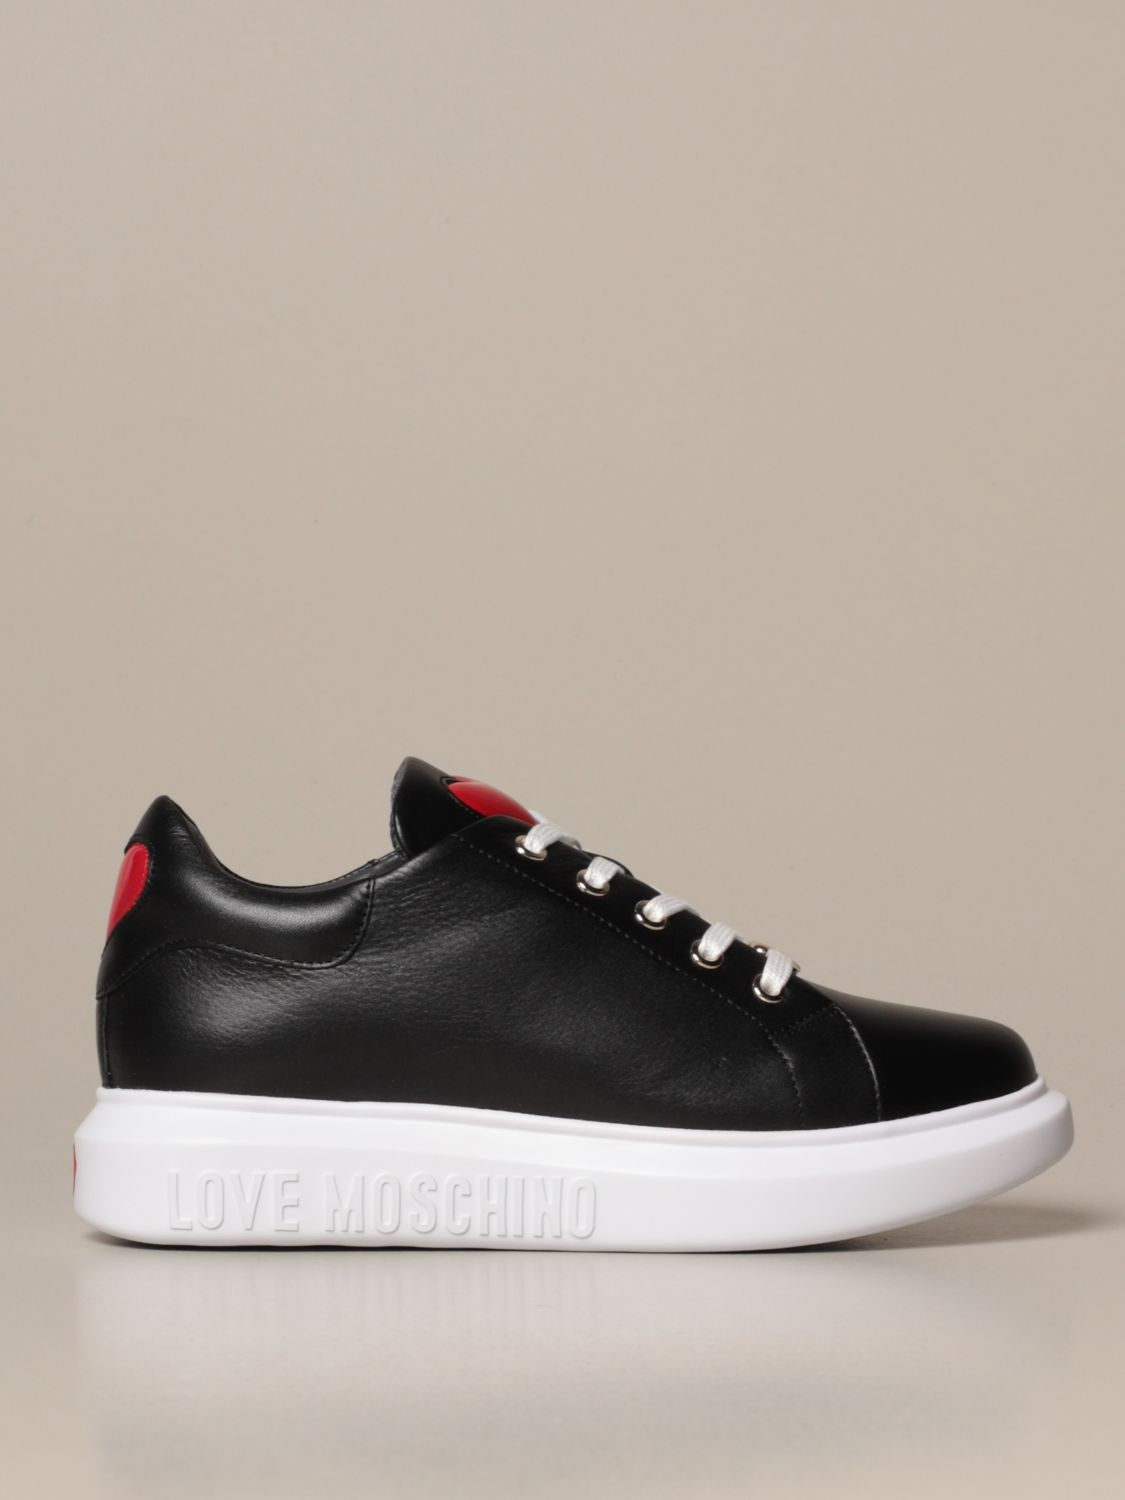 Love Moschino sneakers in leather with